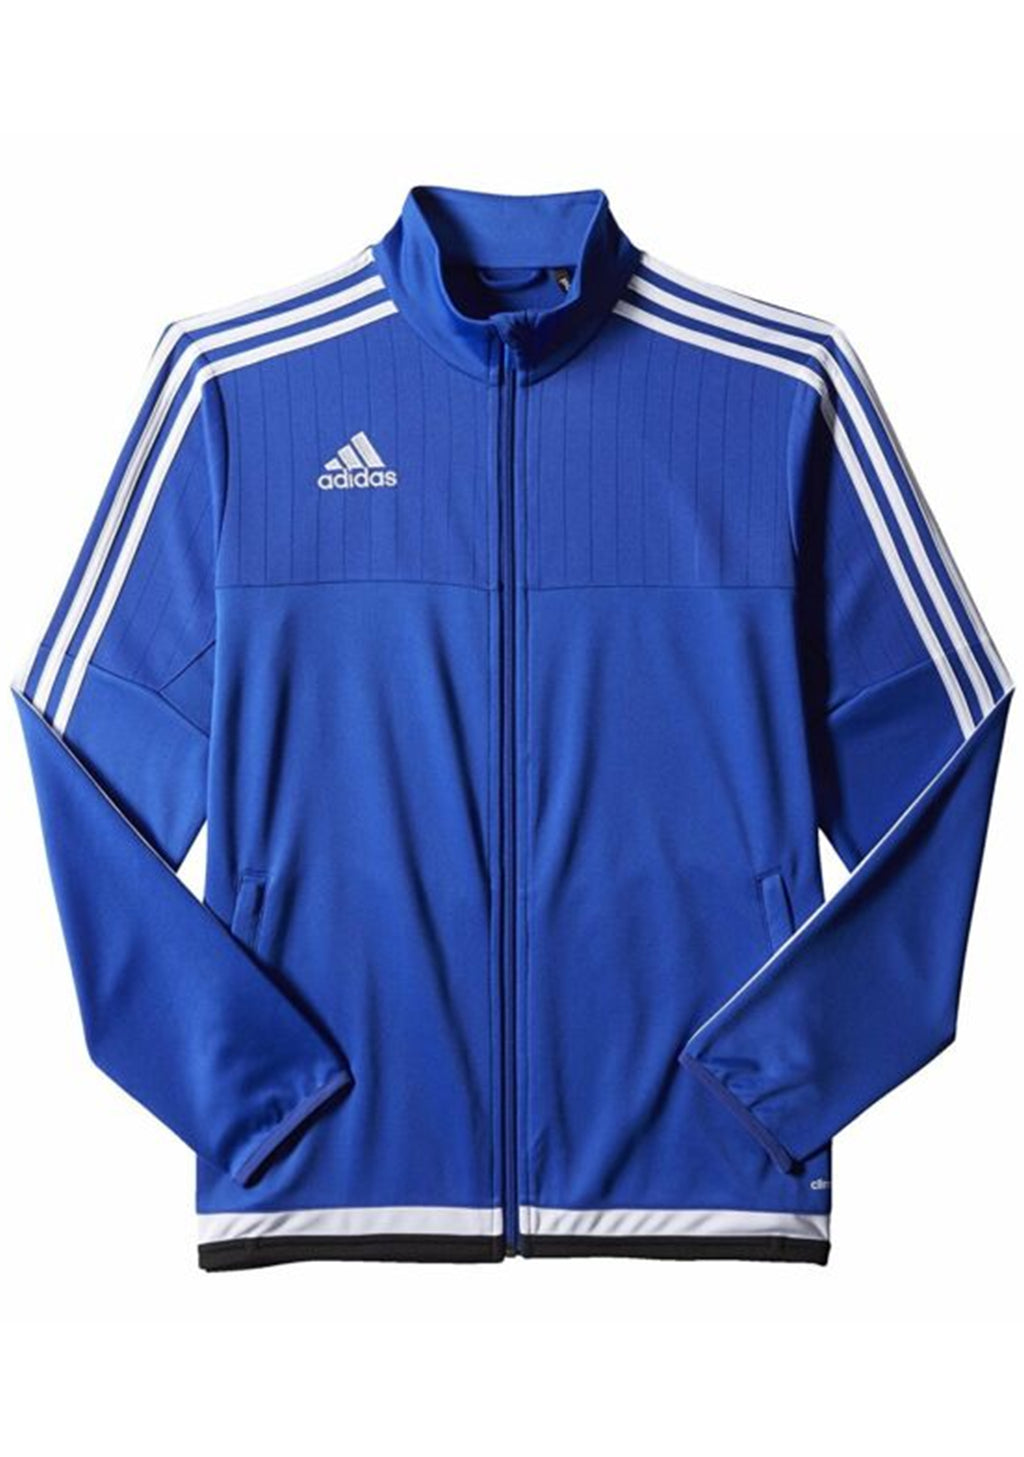 ADIDAS MENS TIRO 15 TRAINING JACKET BLUE <BR> S22317